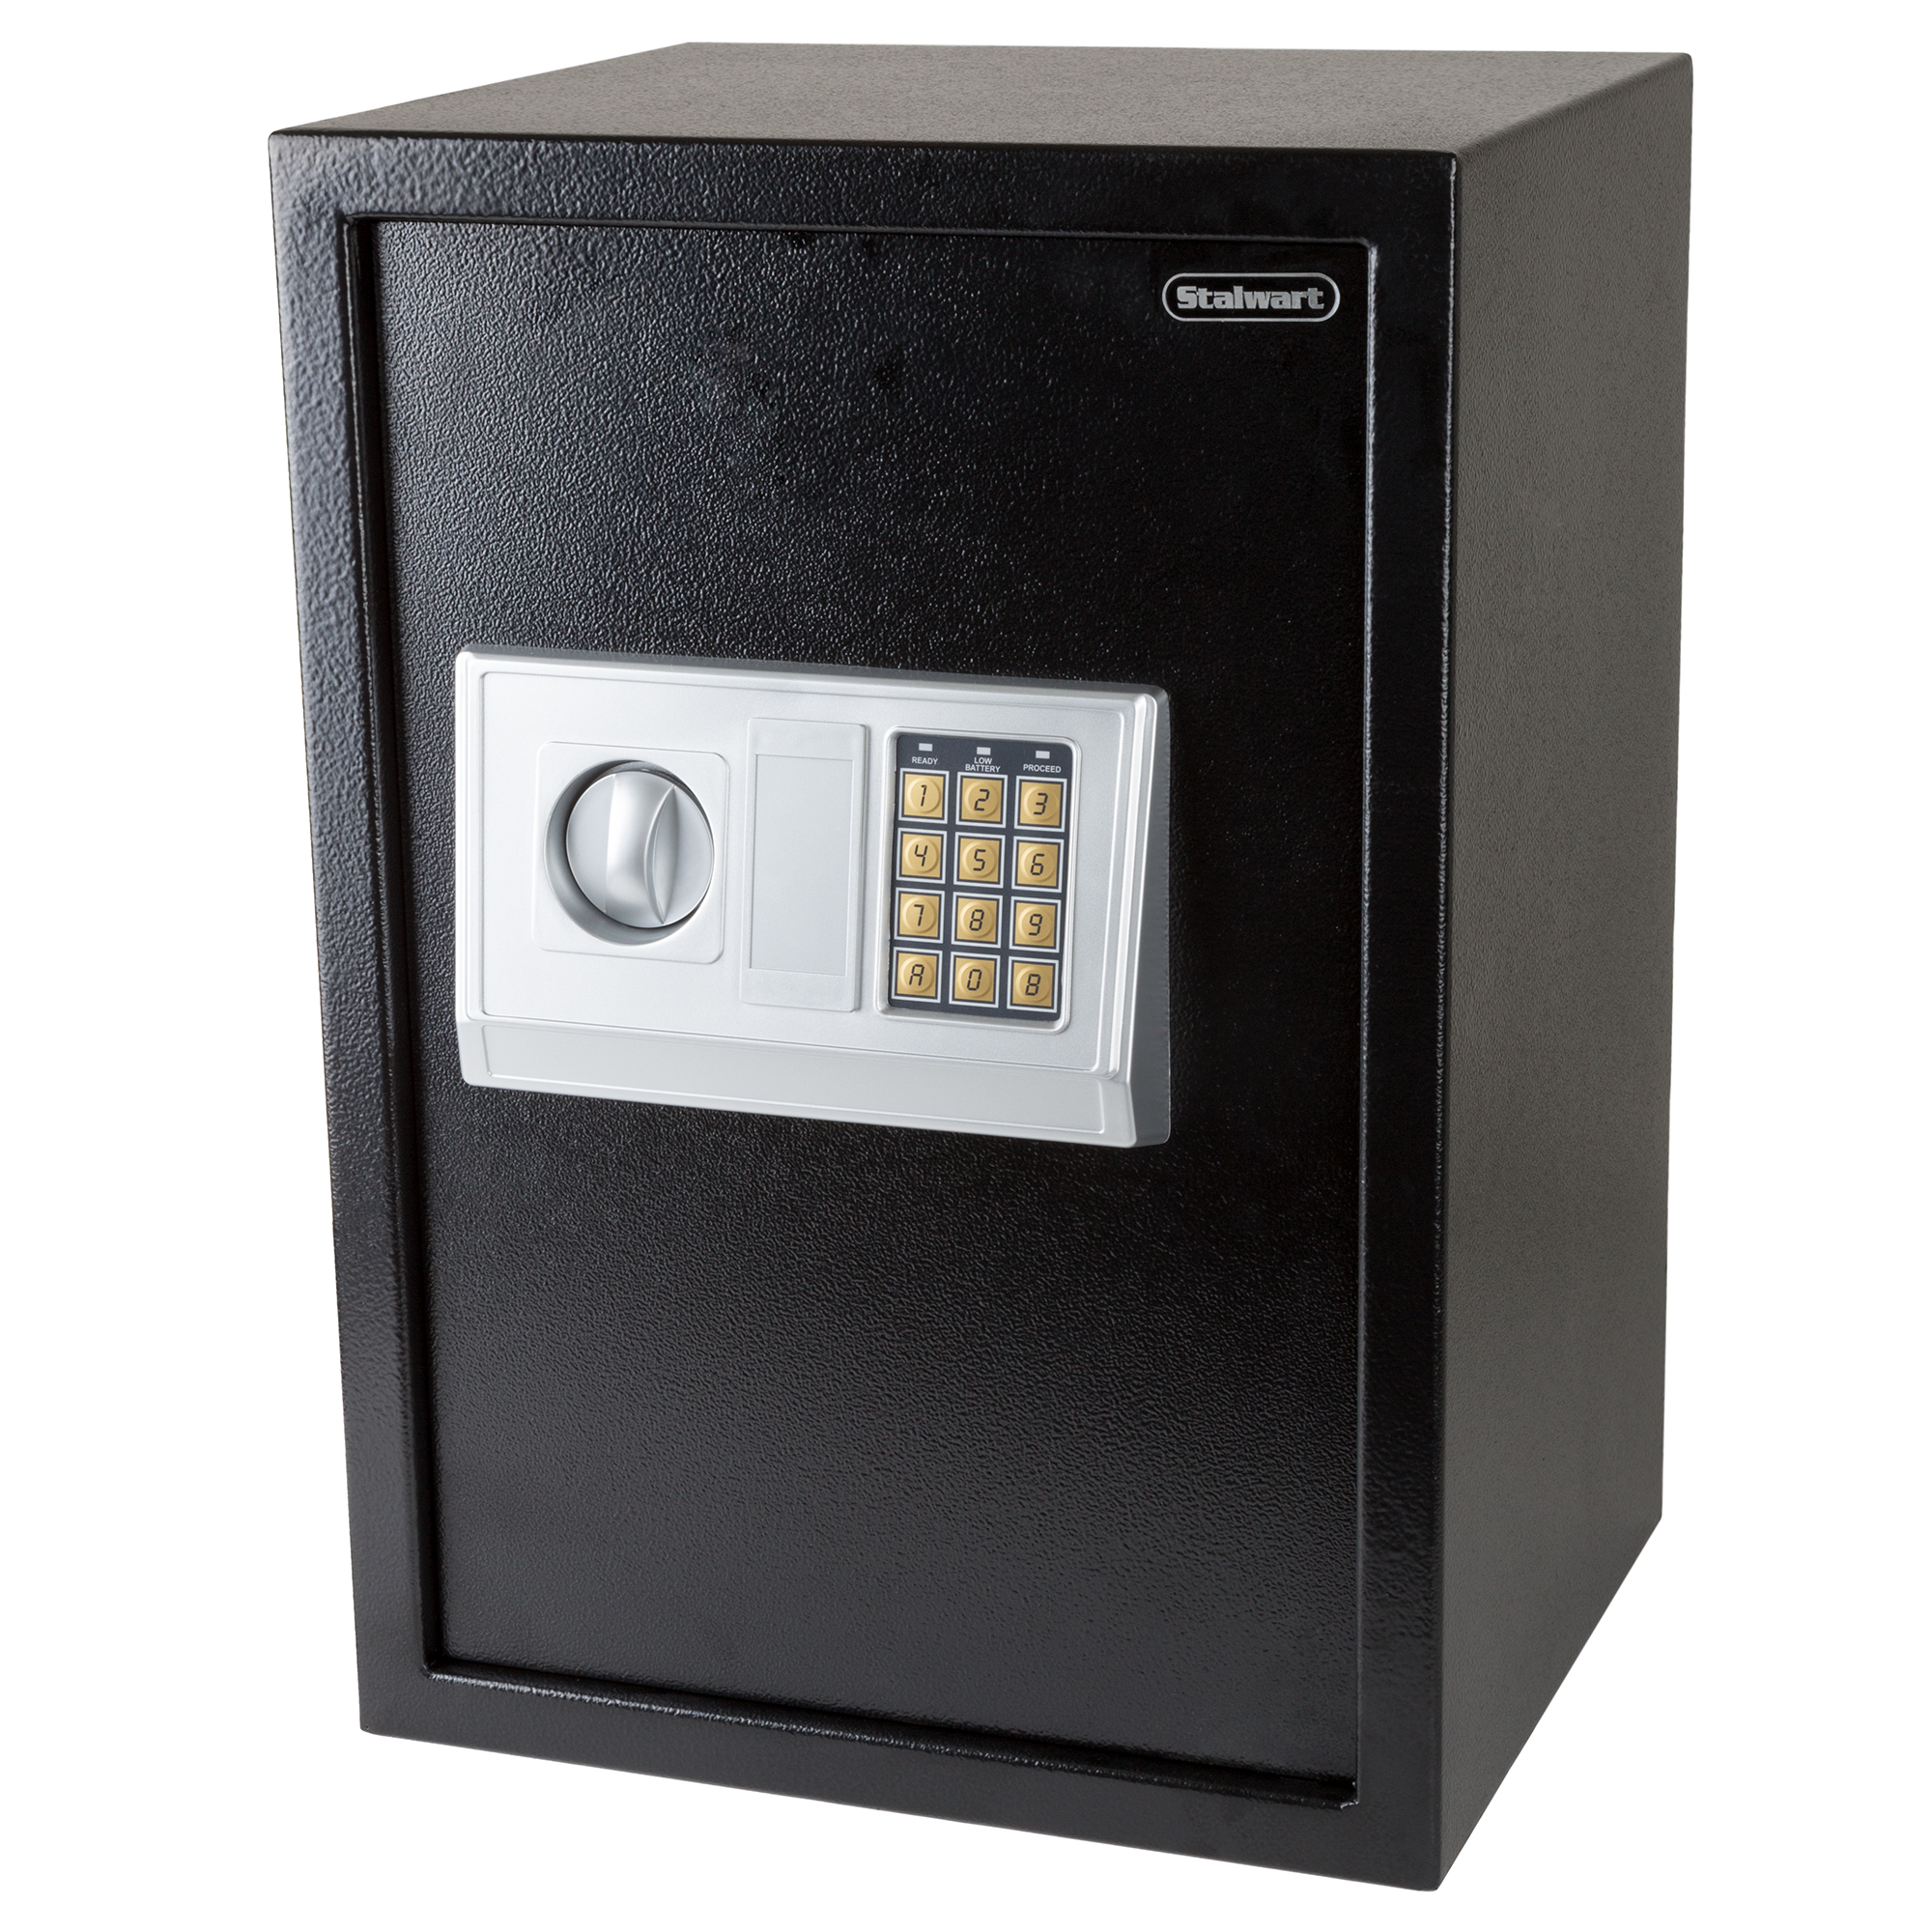 Digital Safe-Electronic, Extra-Large, Steel, Keypad, 2 Manual Override Keys by Stalwart